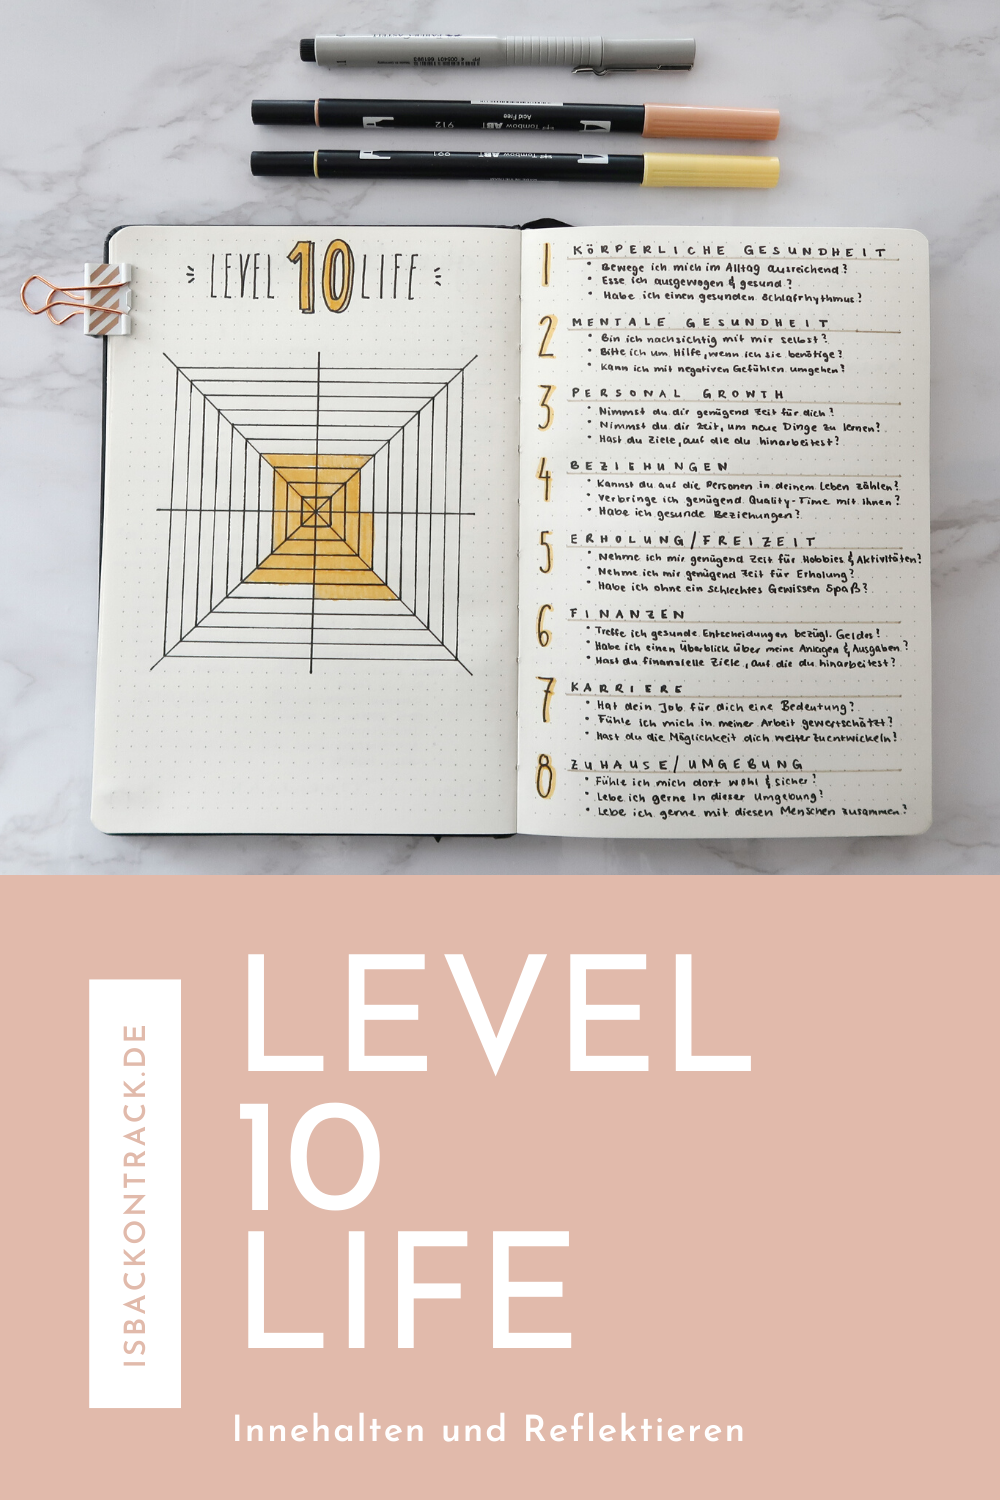 Level 10 Life, Text, Bullet Journal